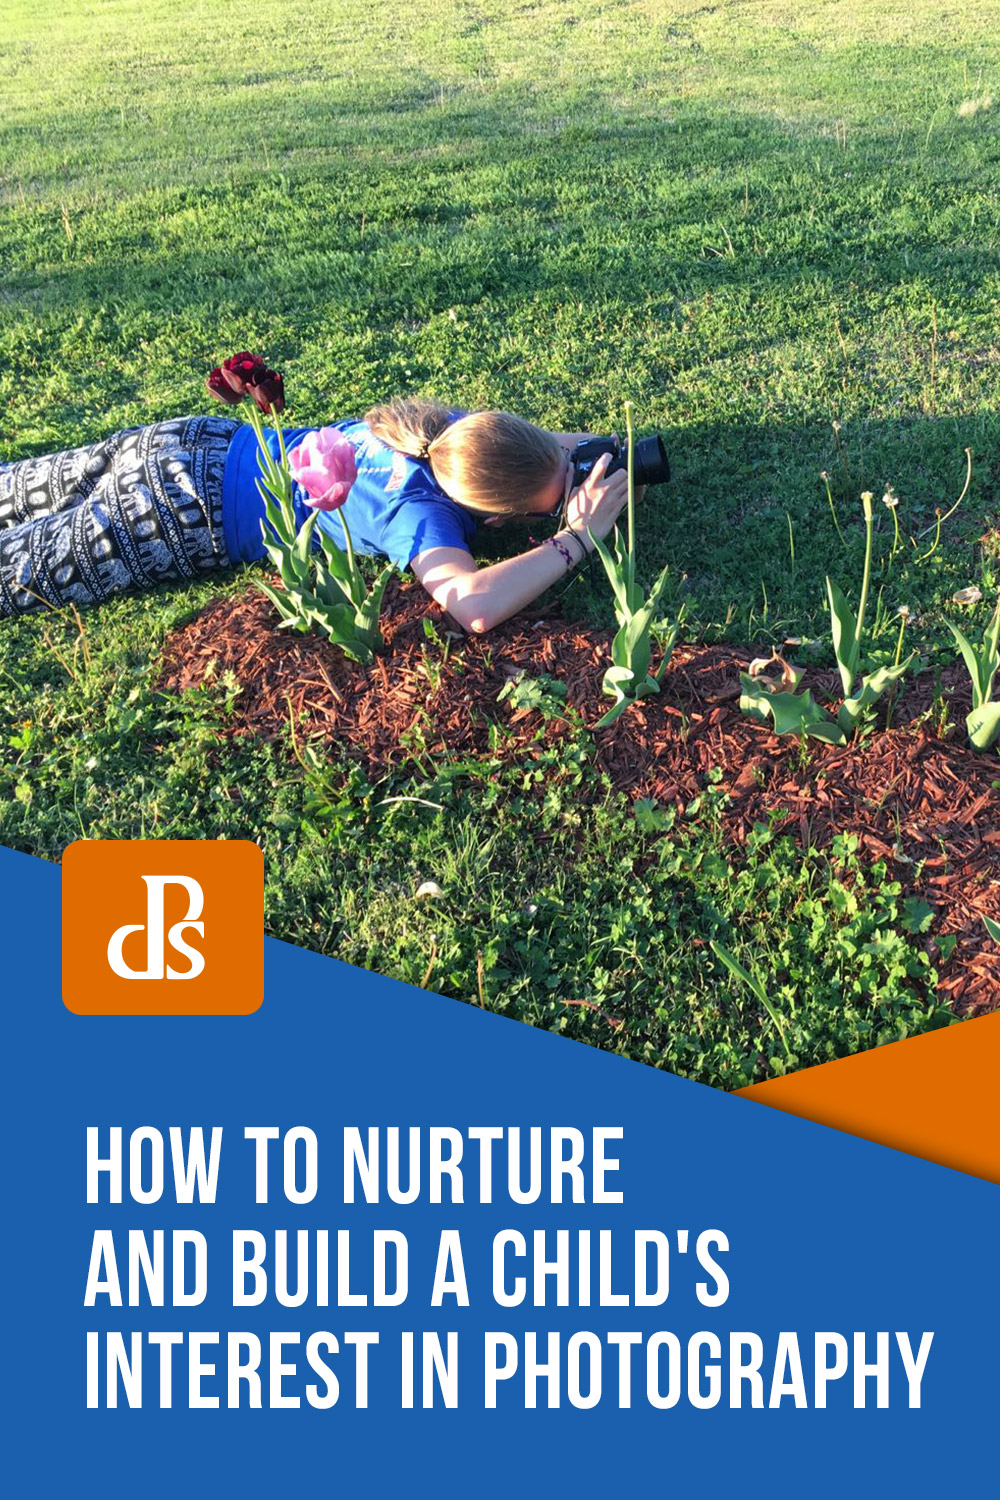 How to Nurture and Build a Child's Interest in Photography